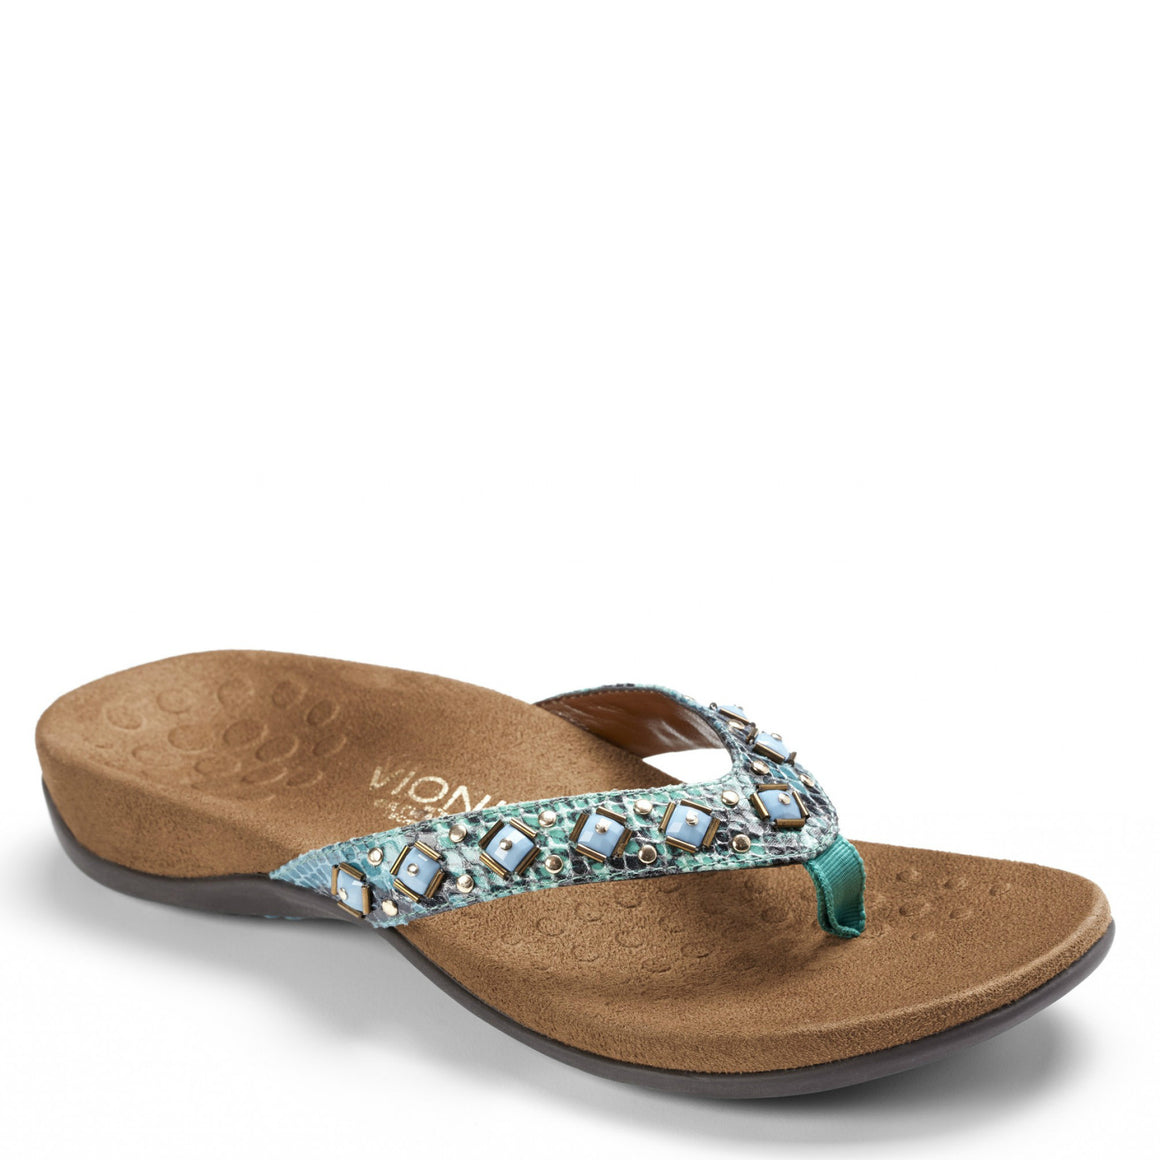 Vionic Women's Floriana Toe-Post Sandal - Teal Snake